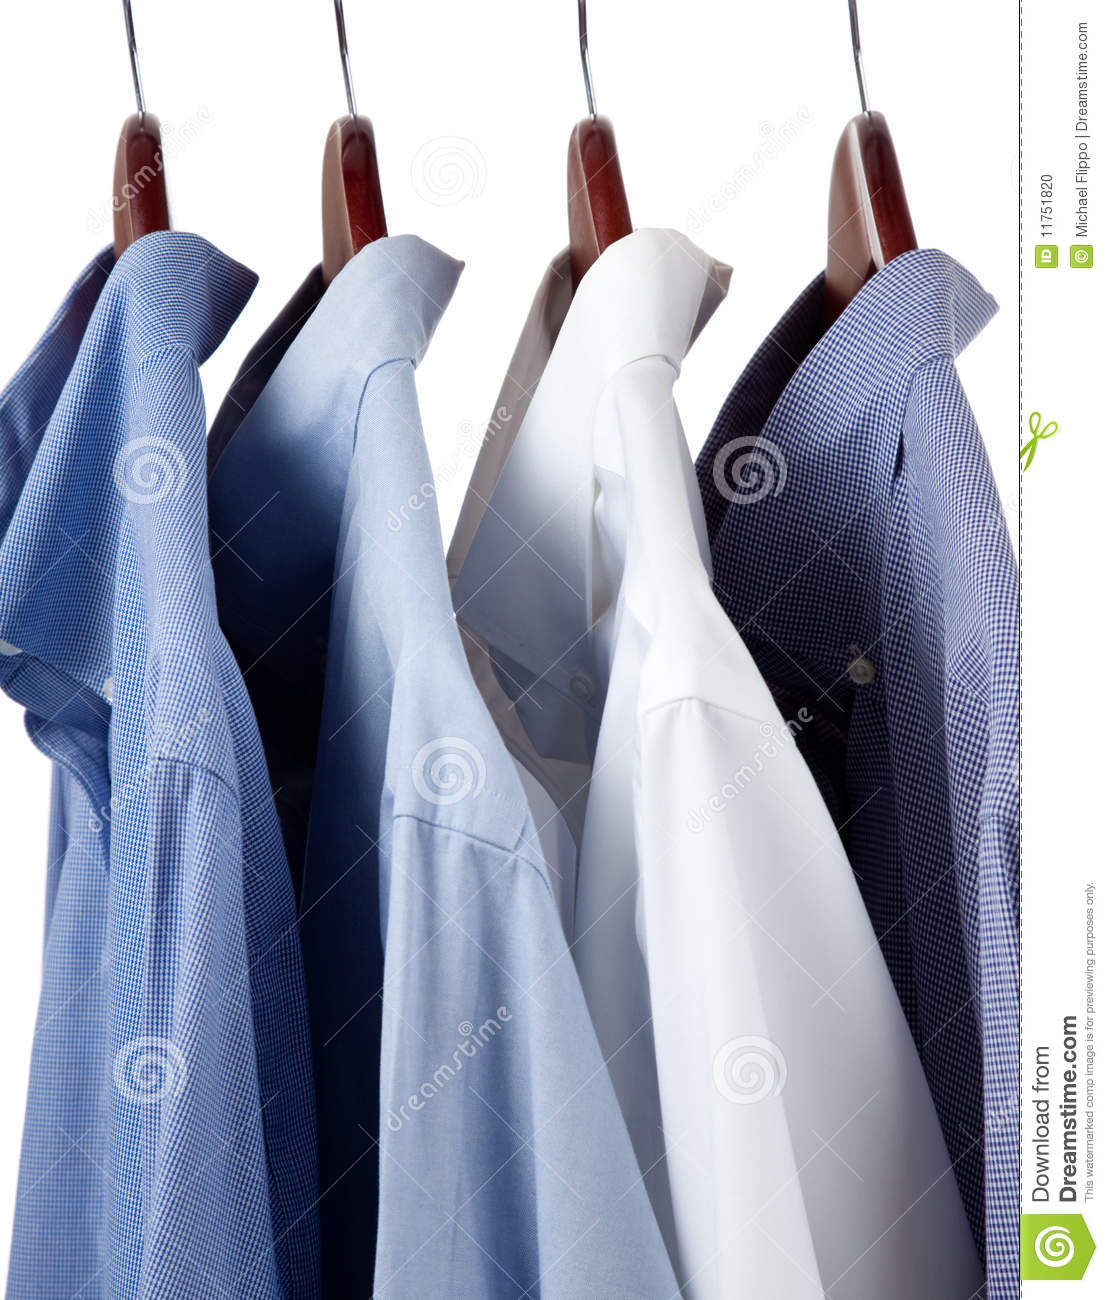 blue dress shirts on wooden hangers stock photo image